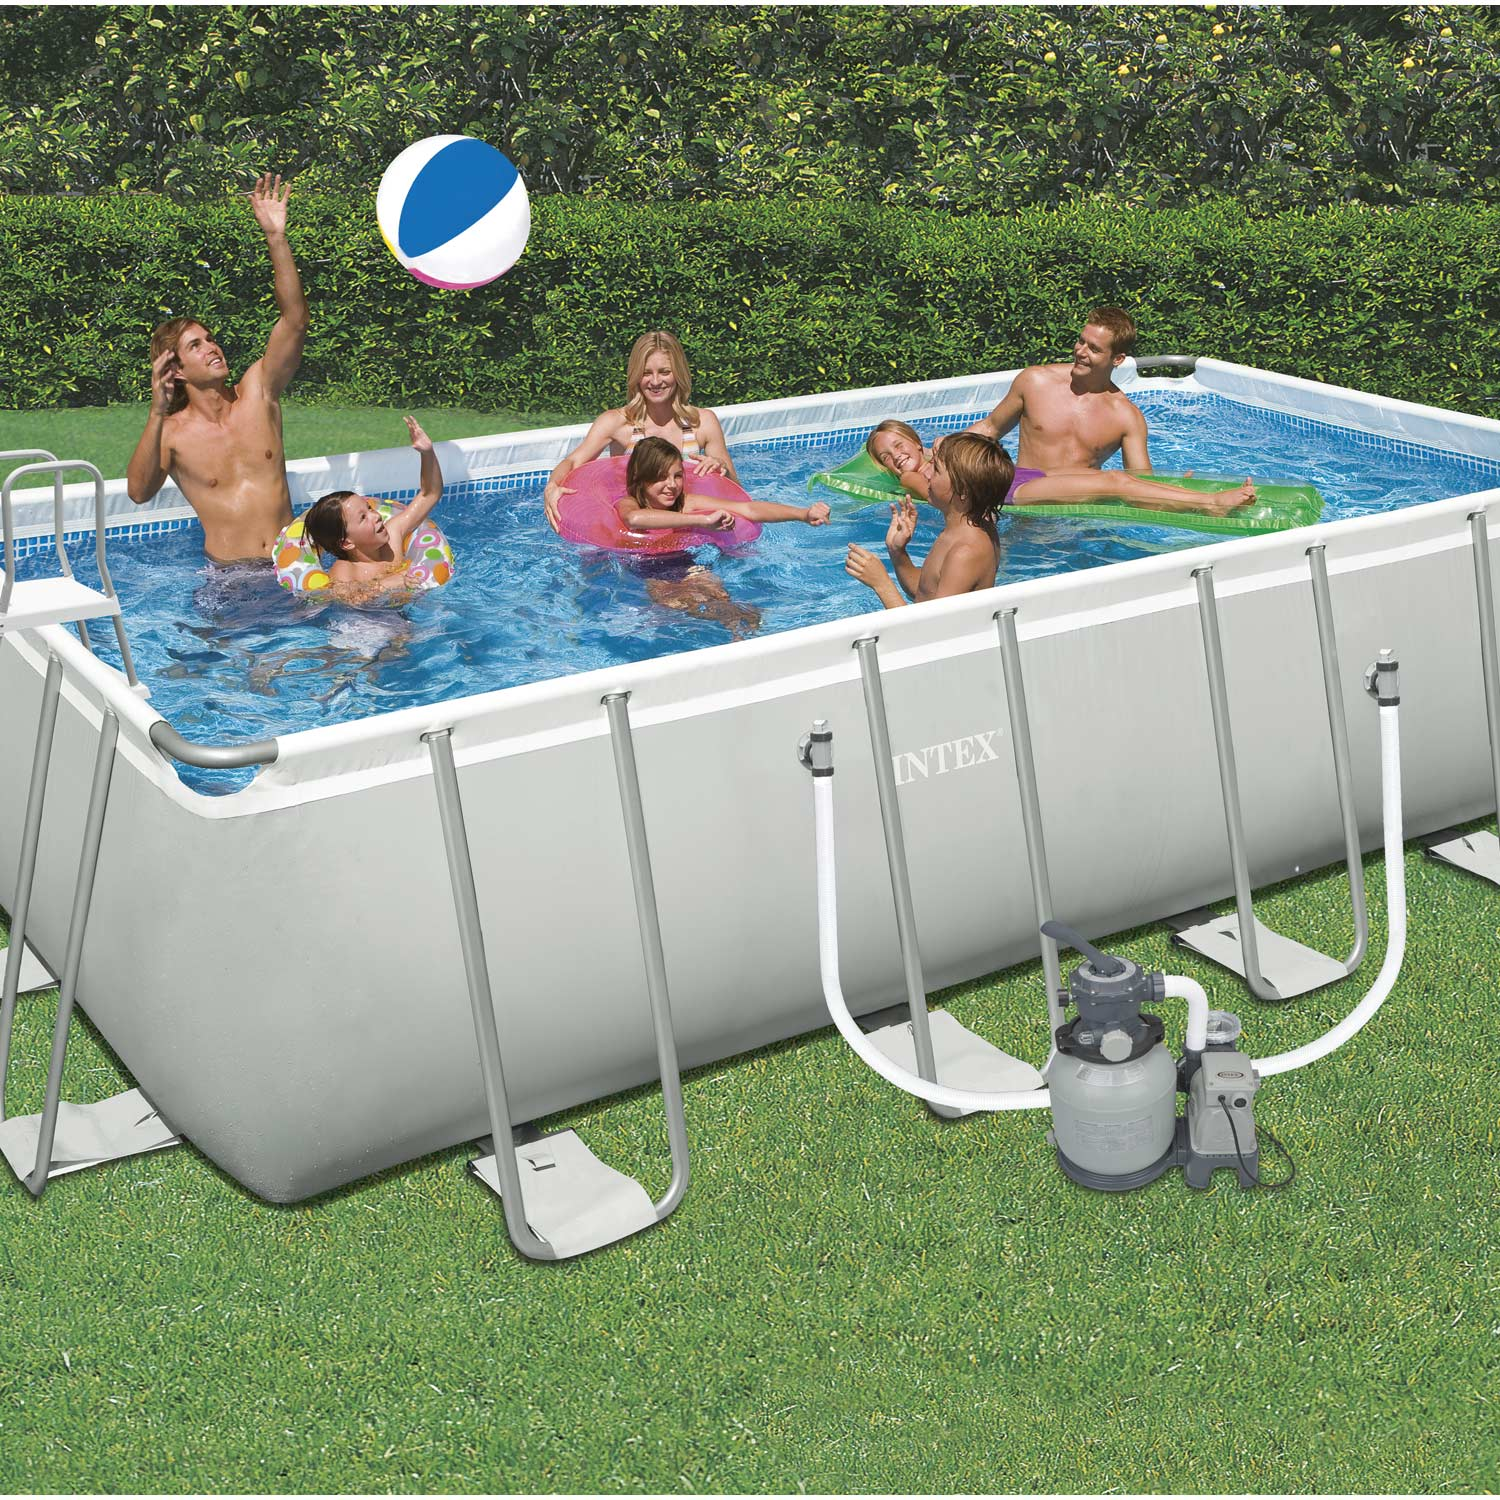 Piscine hors sol autoportante tubulaire intex l x l for Piscine hors sol